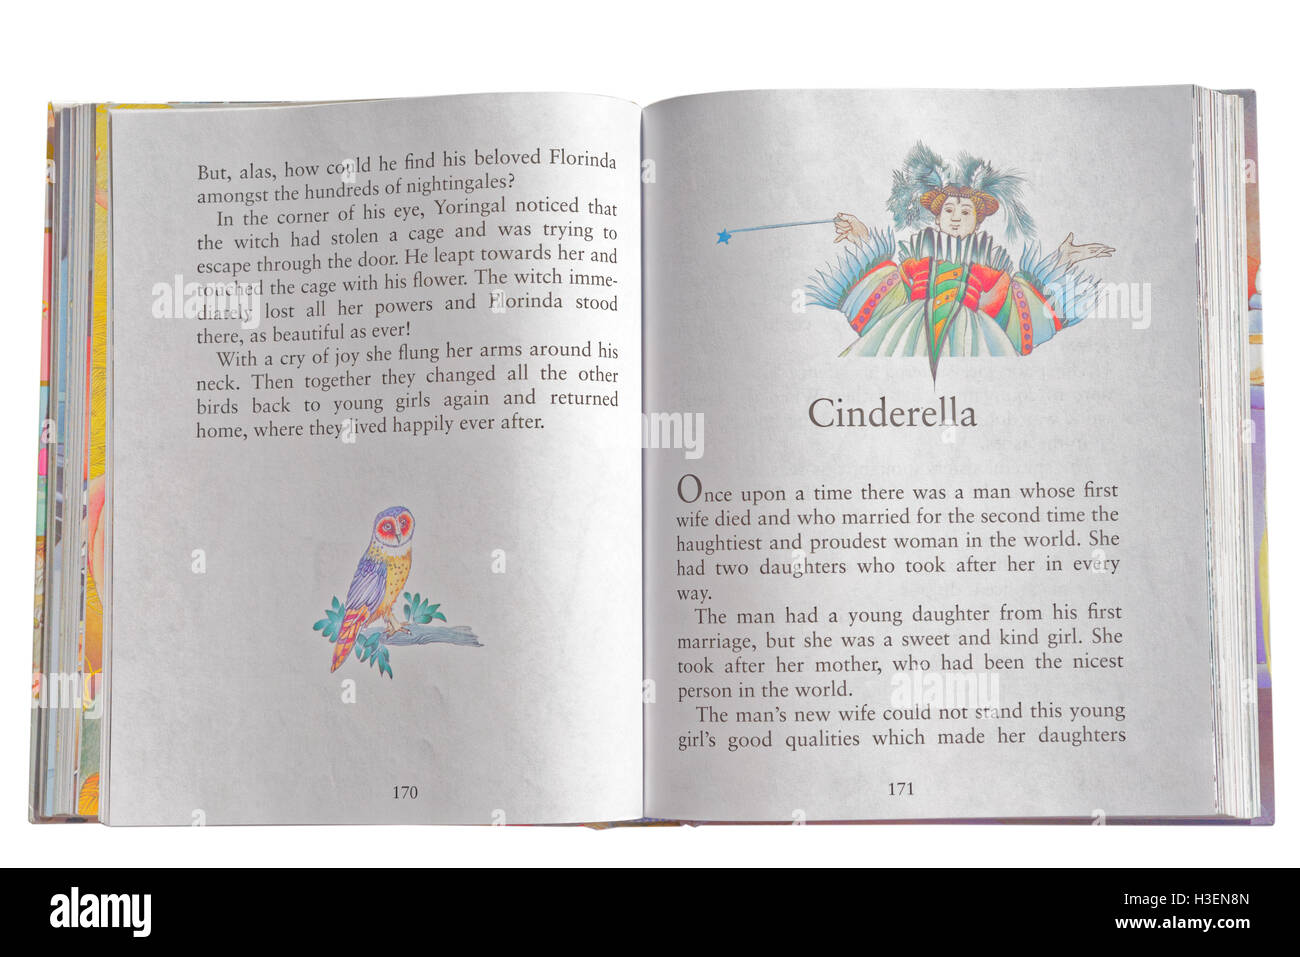 Cinderella in a book of Fairy Tales - Stock Image